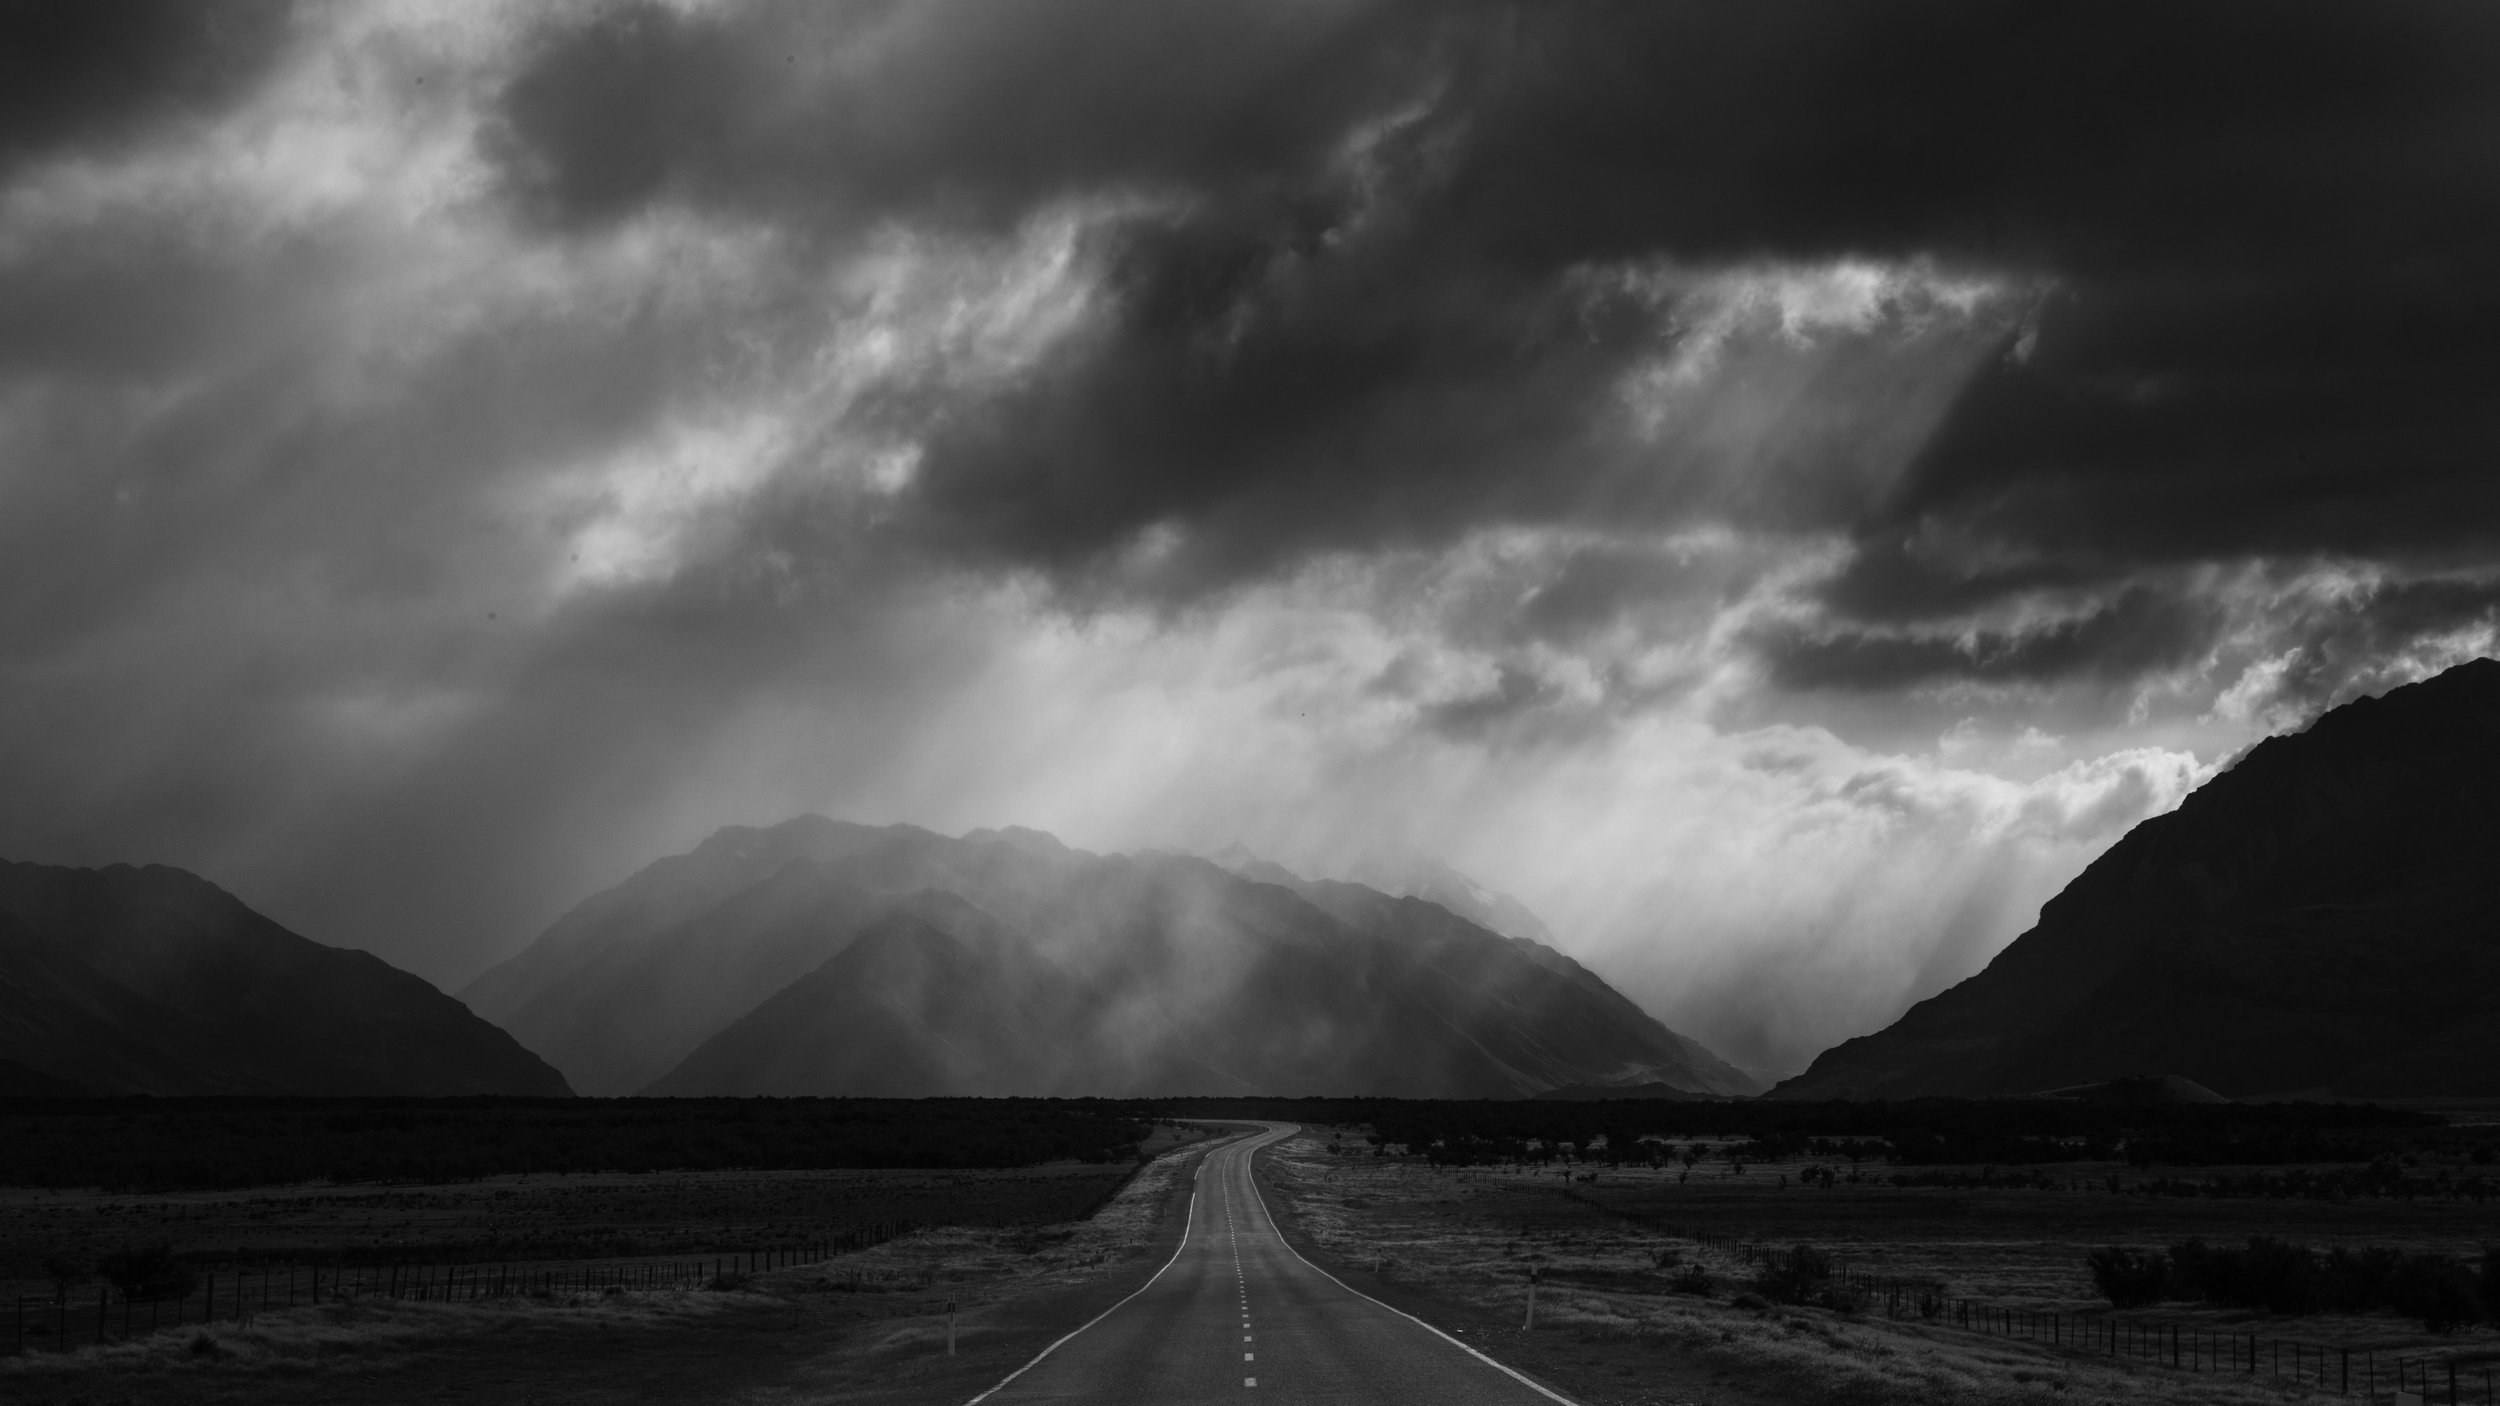 Highway Storm, Geoff Cloake, Eric Young Memorial Trophy and PSNZ Gold Medal for Best Landscape Projected Image.